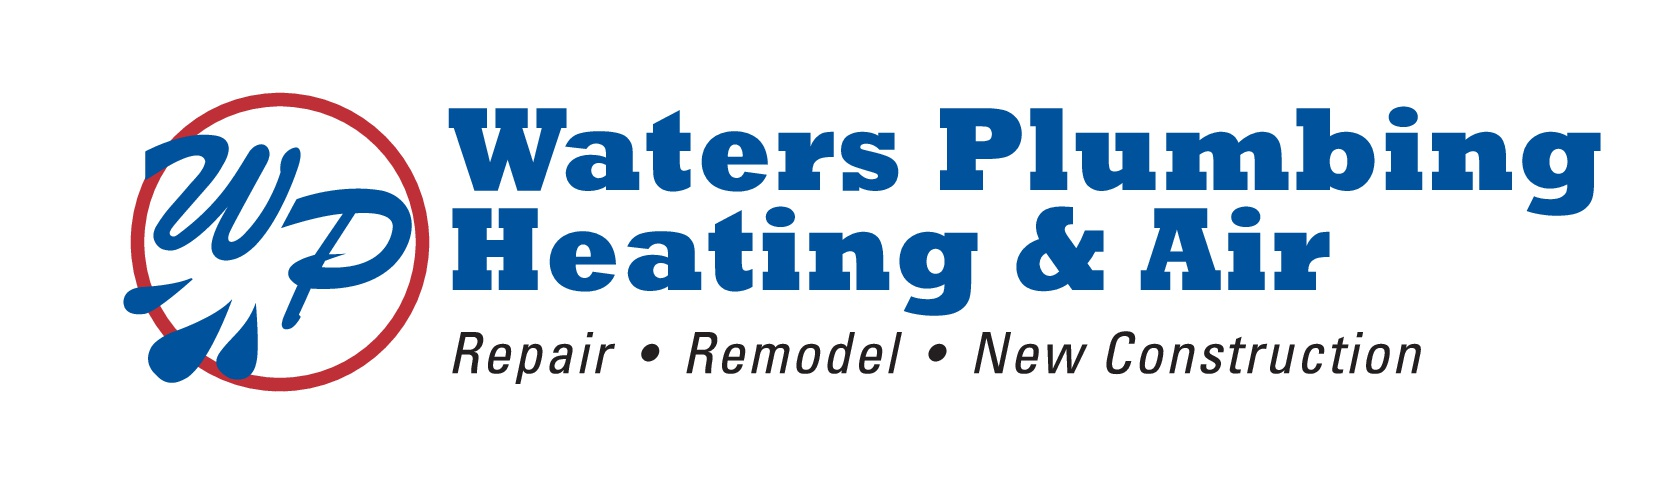 Waters Plumbing Heating & Air